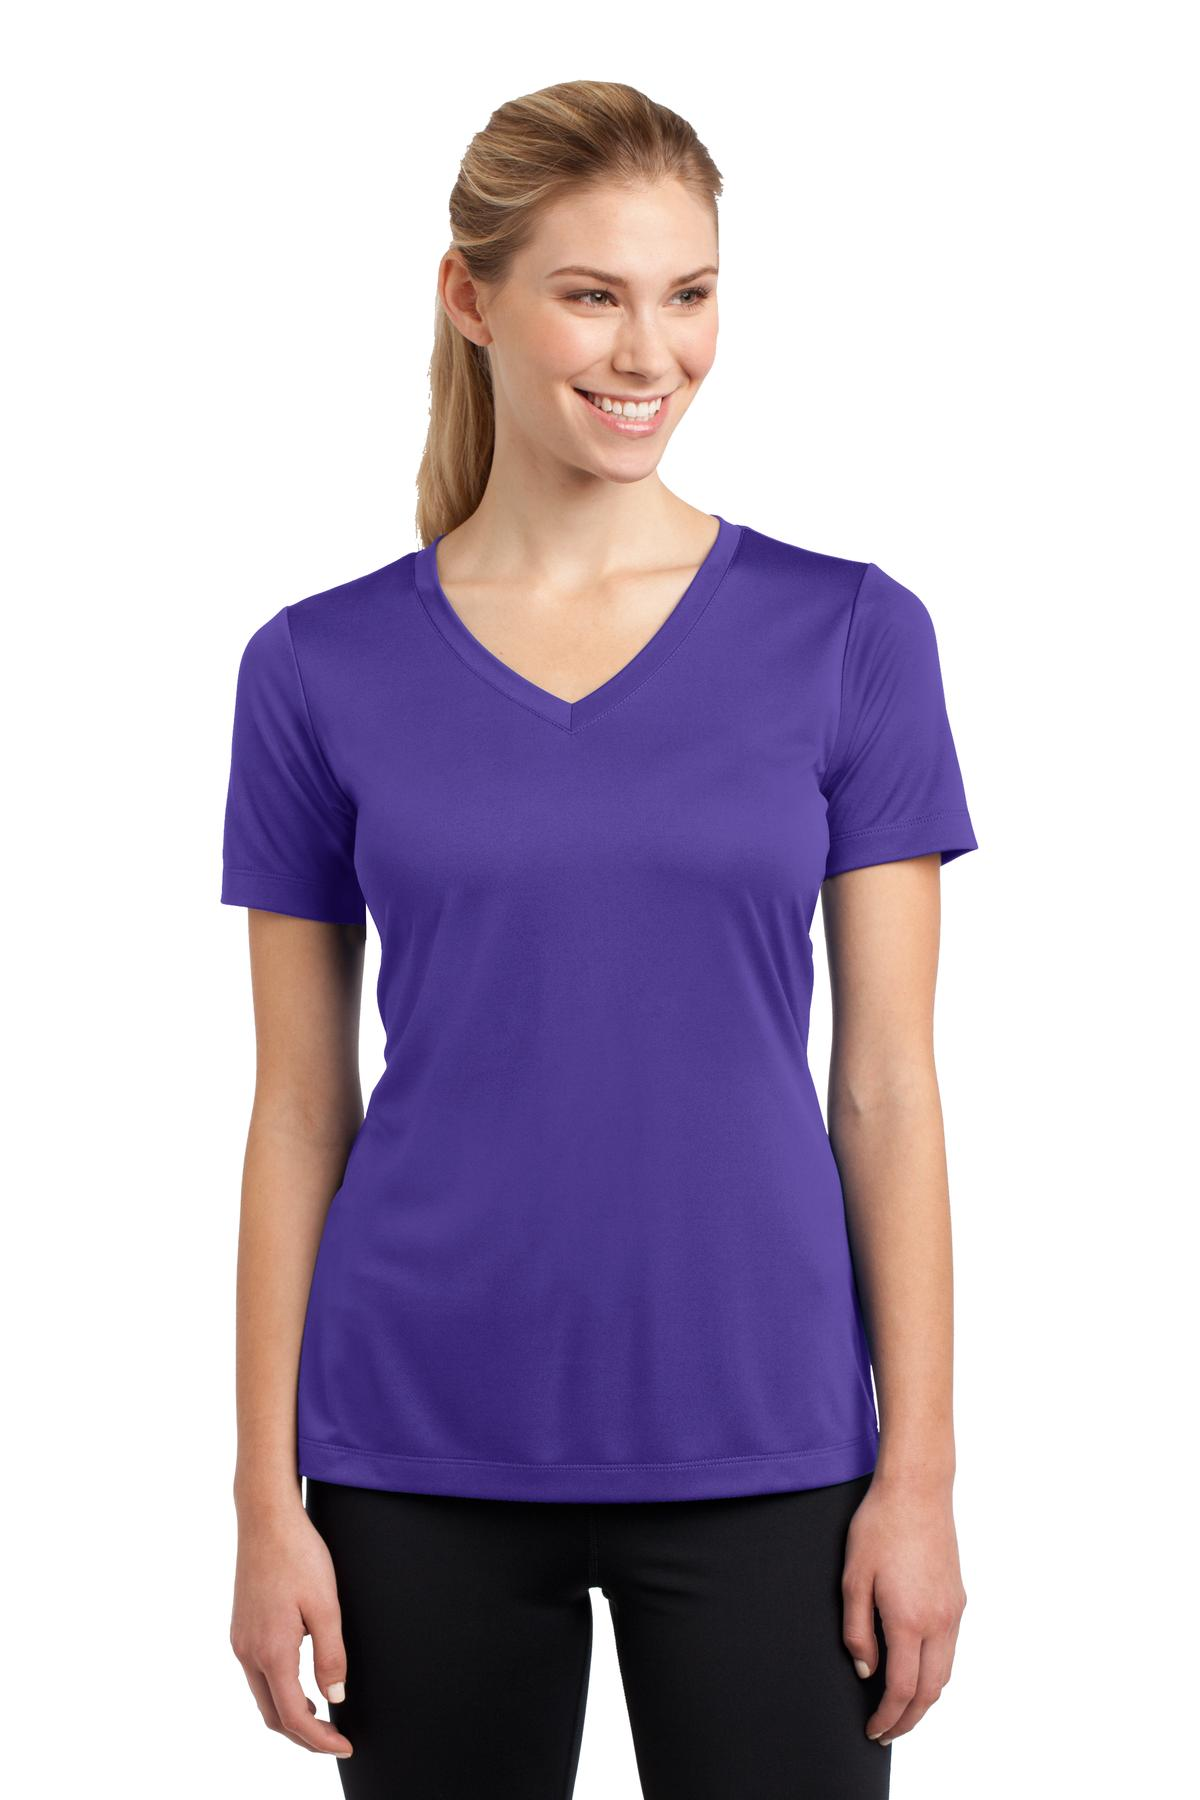 Sport-Tek ®  Ladies PosiCharge ®  Competitor™ V-Neck Tee. LST353 - Purple